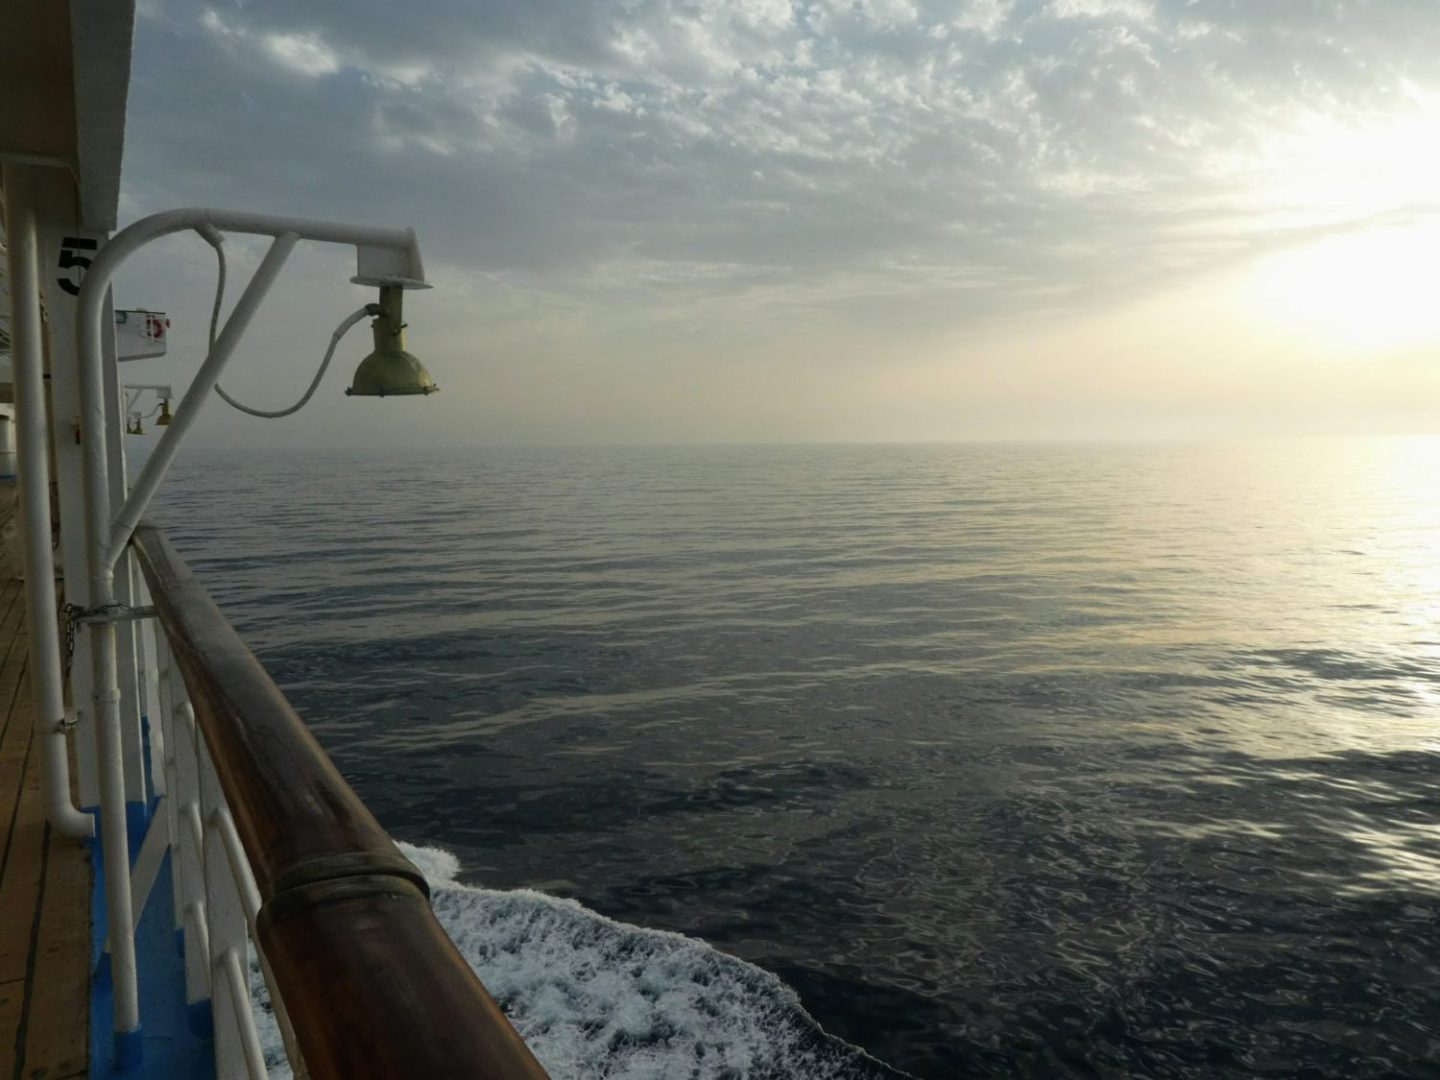 How do you survive over 10 hours at sea?